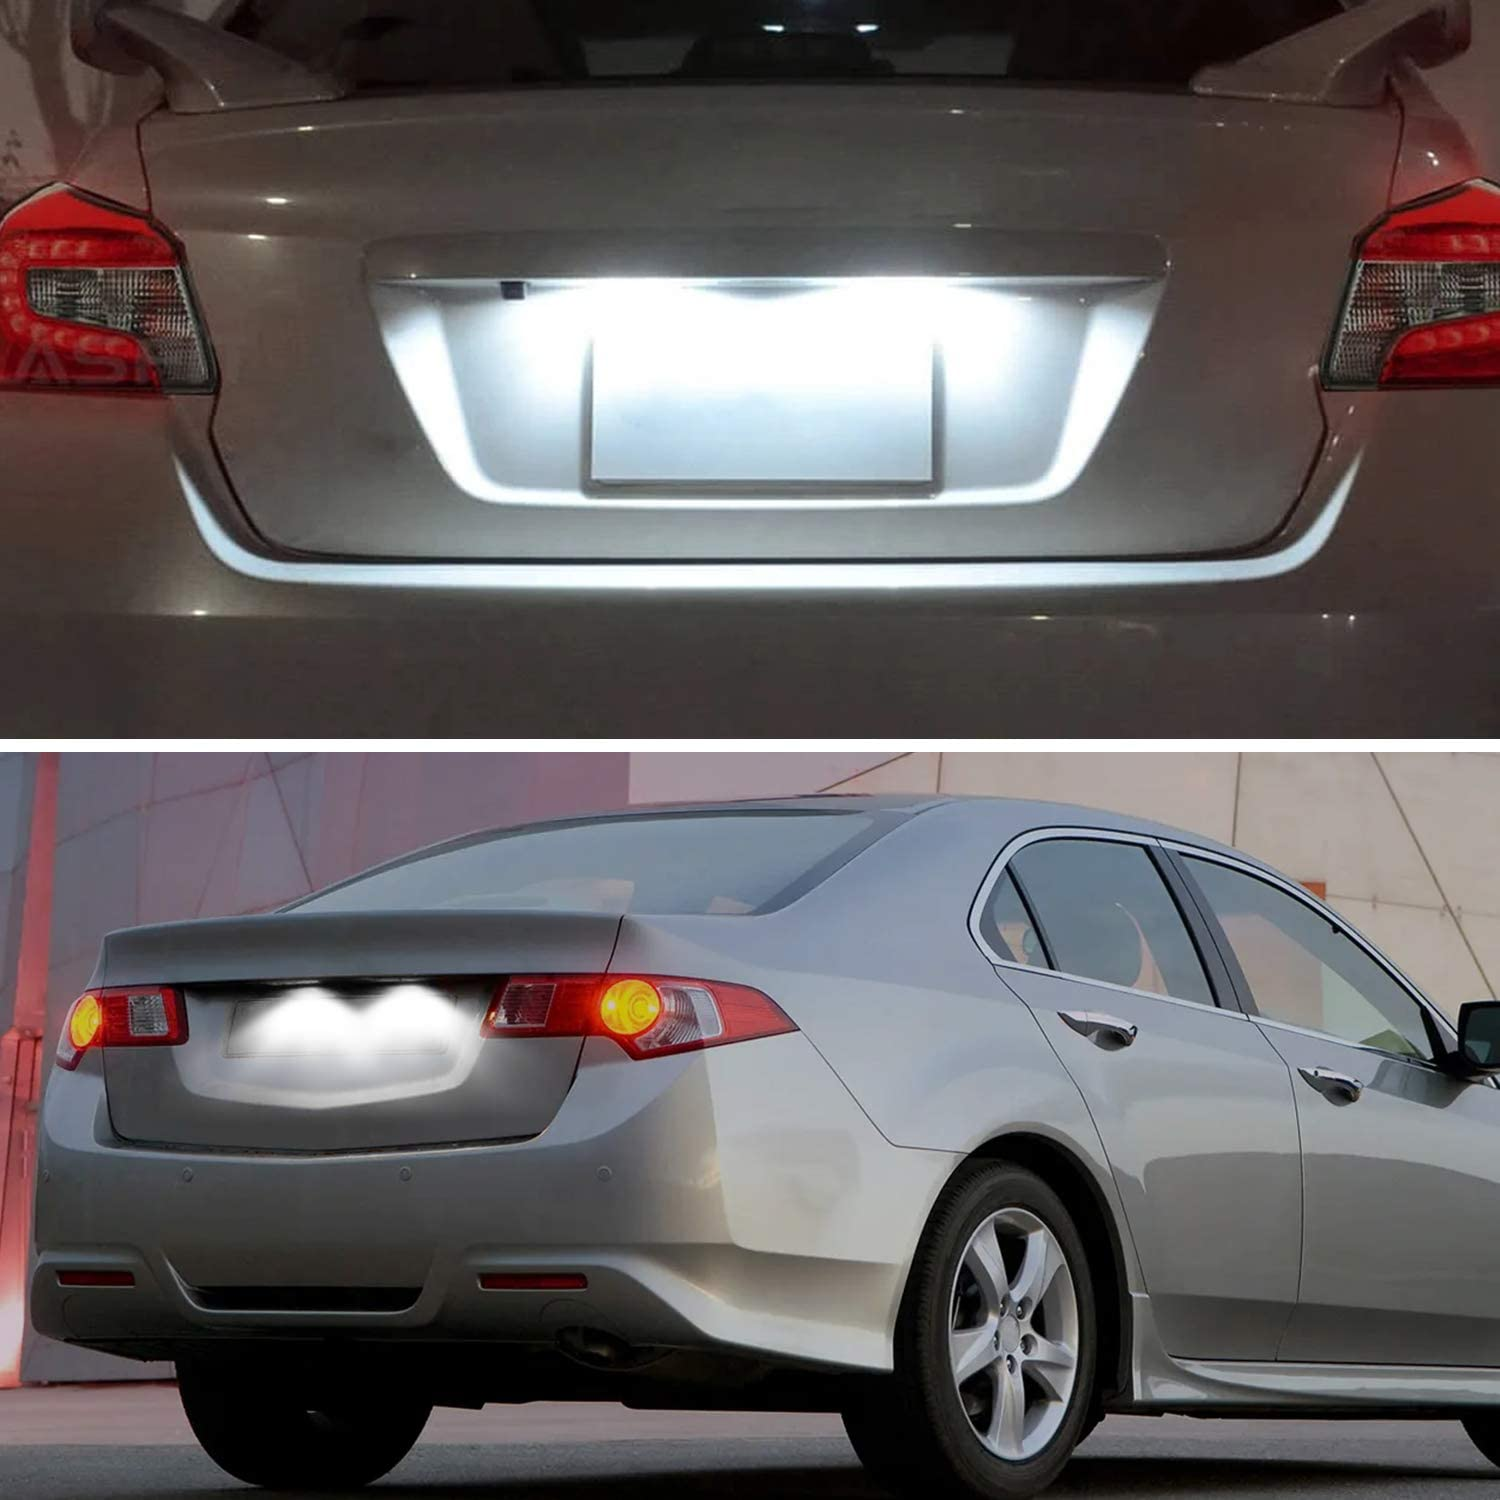 6000K White NDRUSH LED License Plate Light Tag Lights Compatible with Honda Accord Civic Sedan Odyssey Pilot Acura Pack of 2